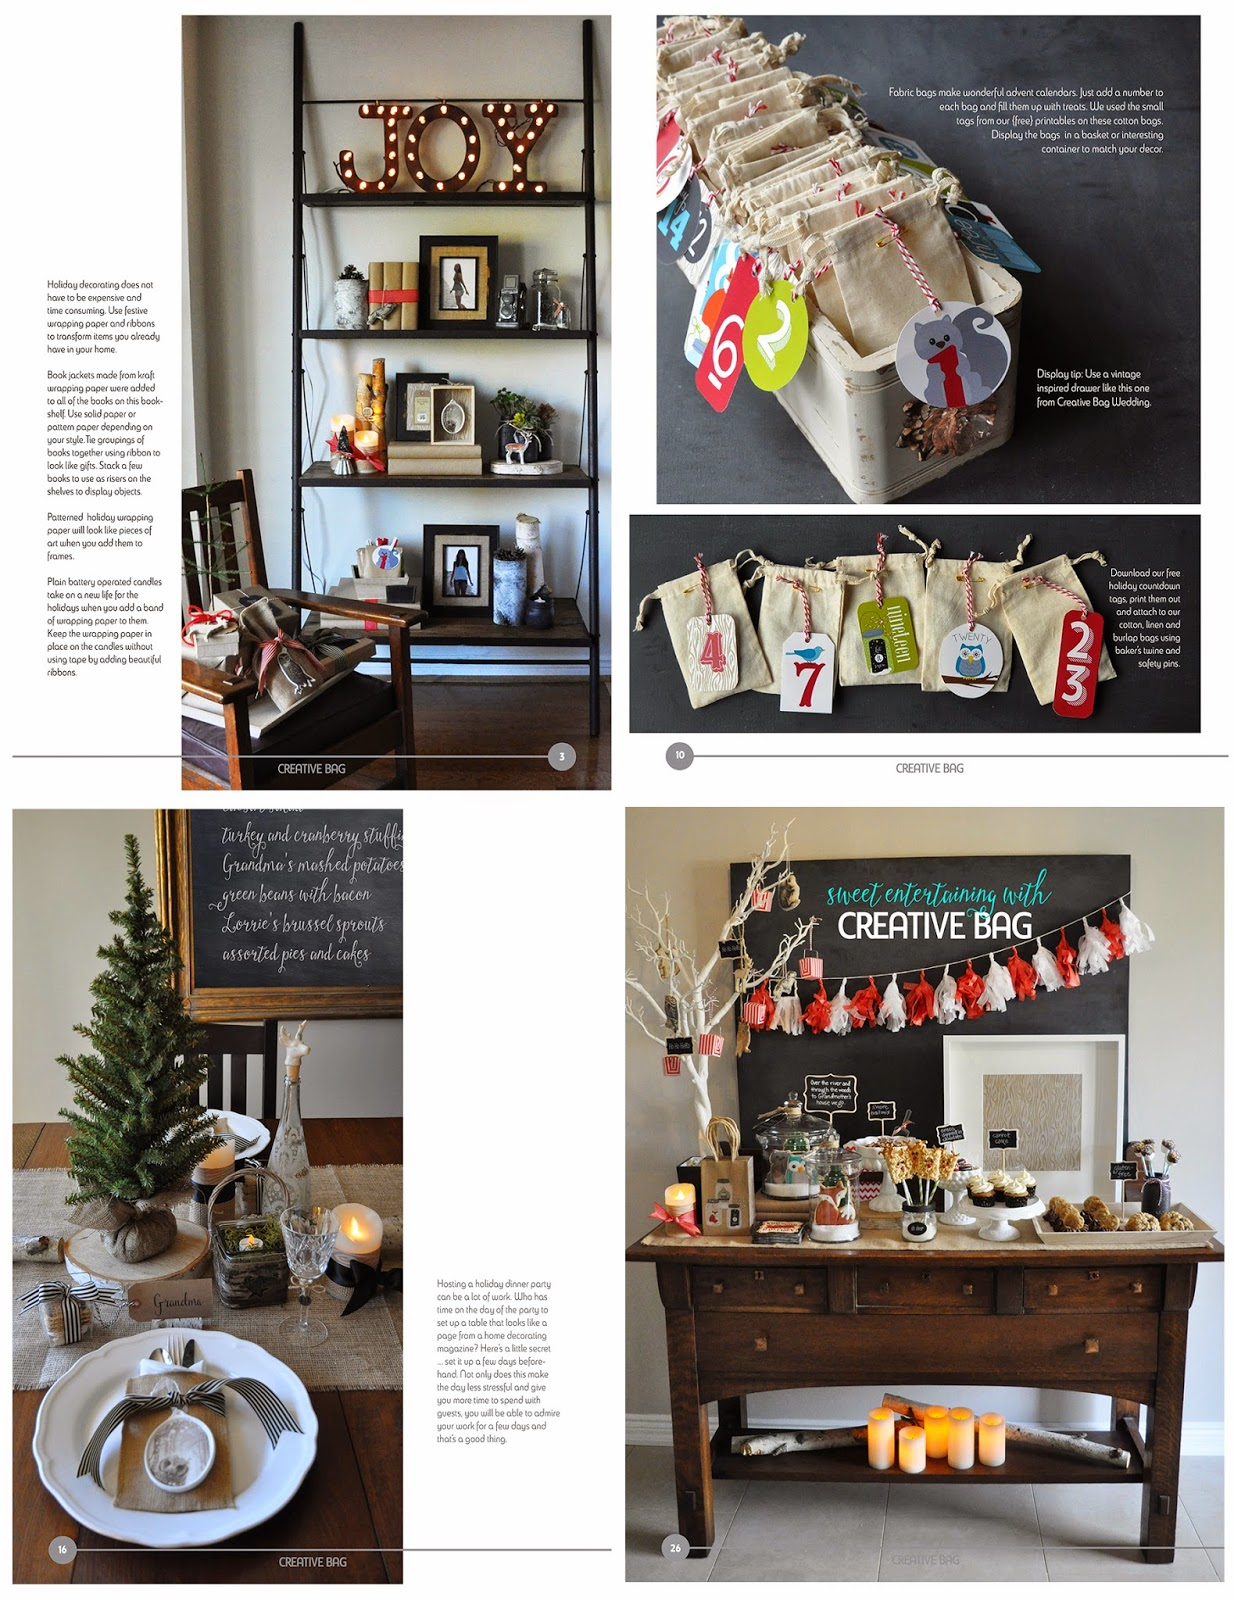 Let's Celebrate - holiday 2014 | Creative Living online magazine